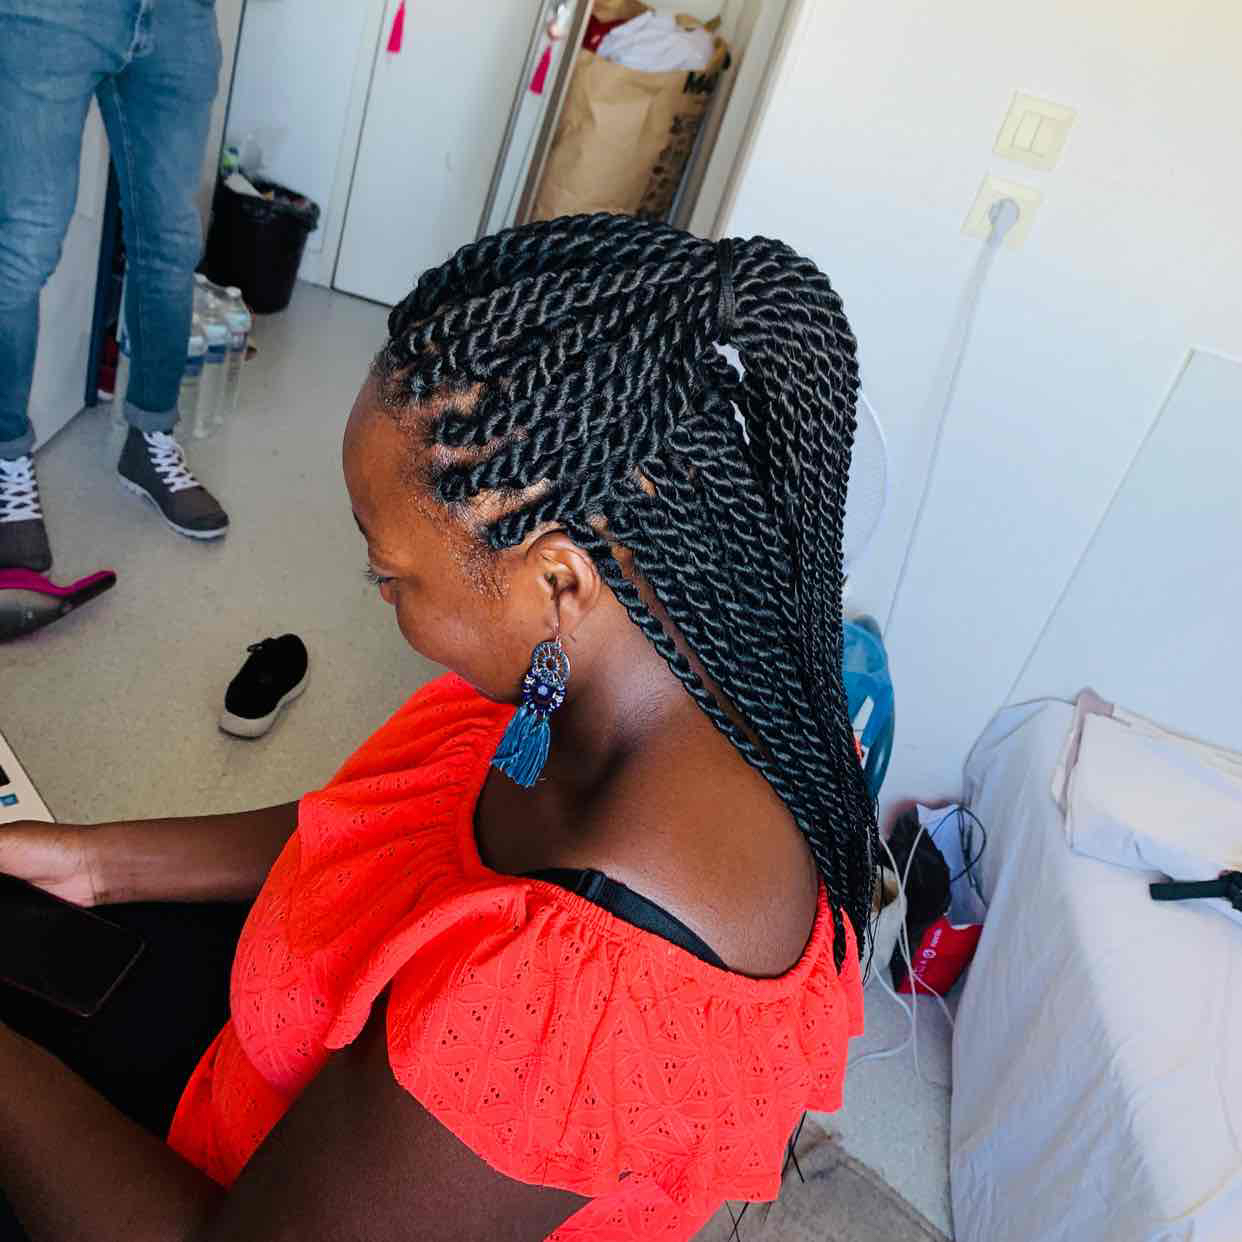 salon de coiffure afro tresse tresses box braids crochet braids vanilles tissages paris 75 77 78 91 92 93 94 95 PJDZKCPT